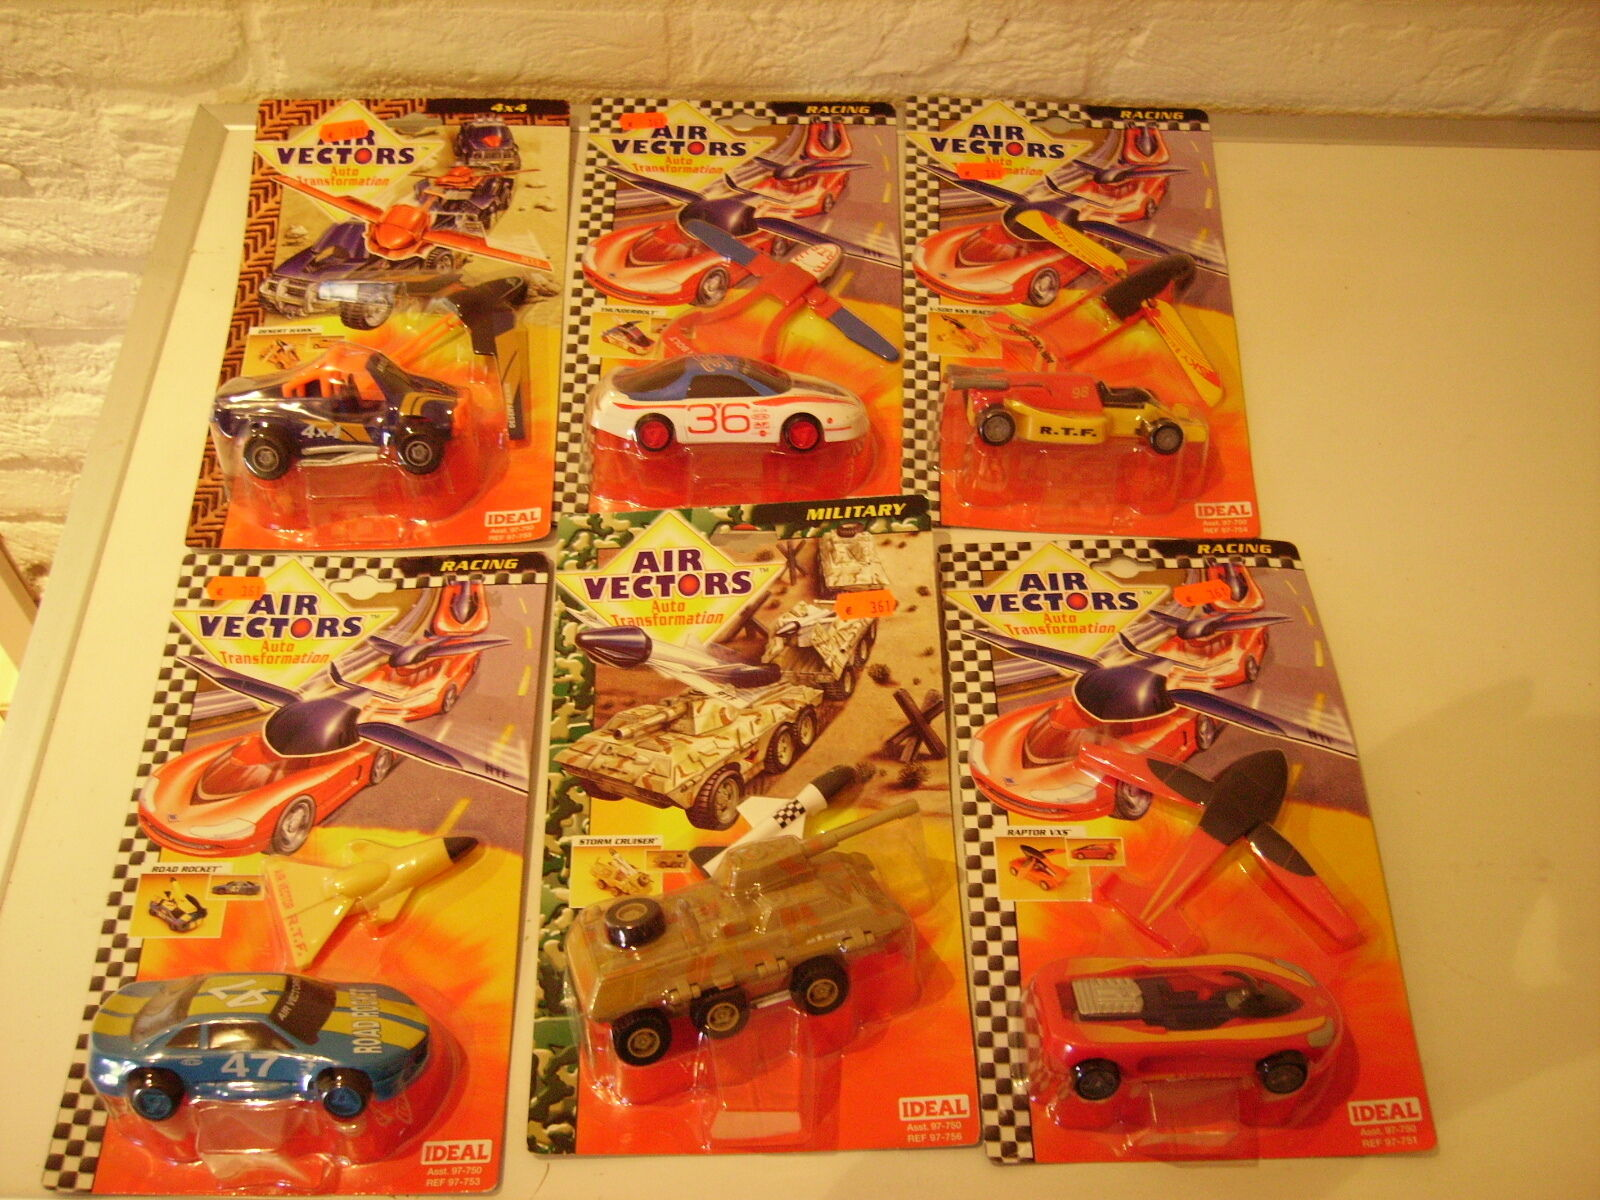 Air Vectors 6 models, complete series, from 1997